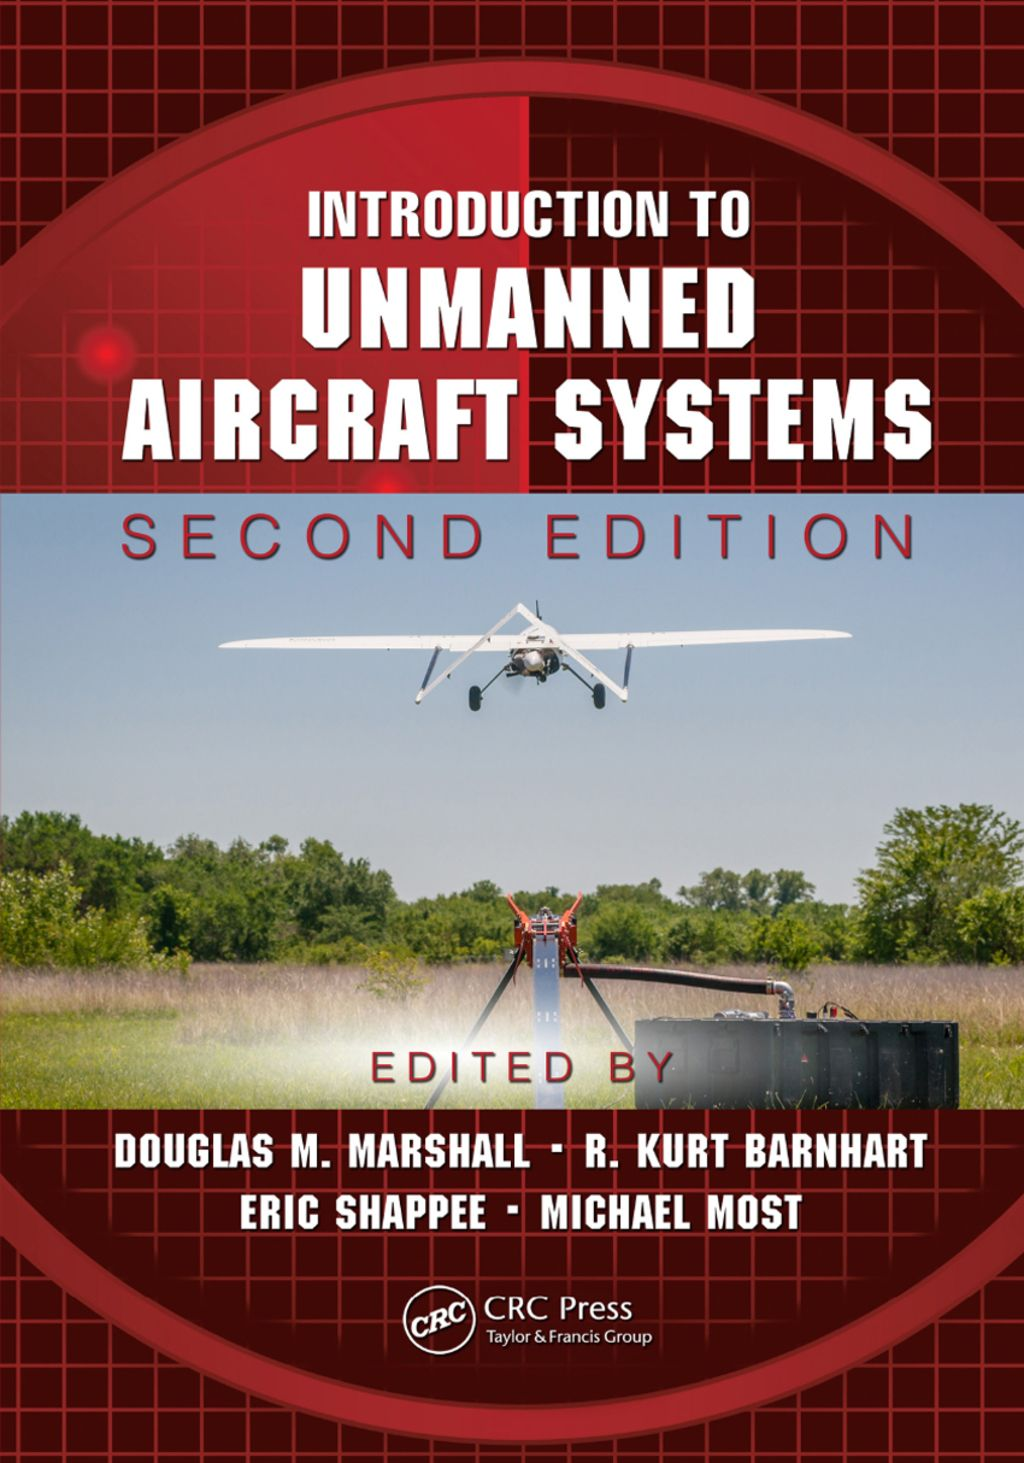 Introduction To Unmanned Aircraft Systems Ebook Rental In 2020 Introduction Aircraft Ebook